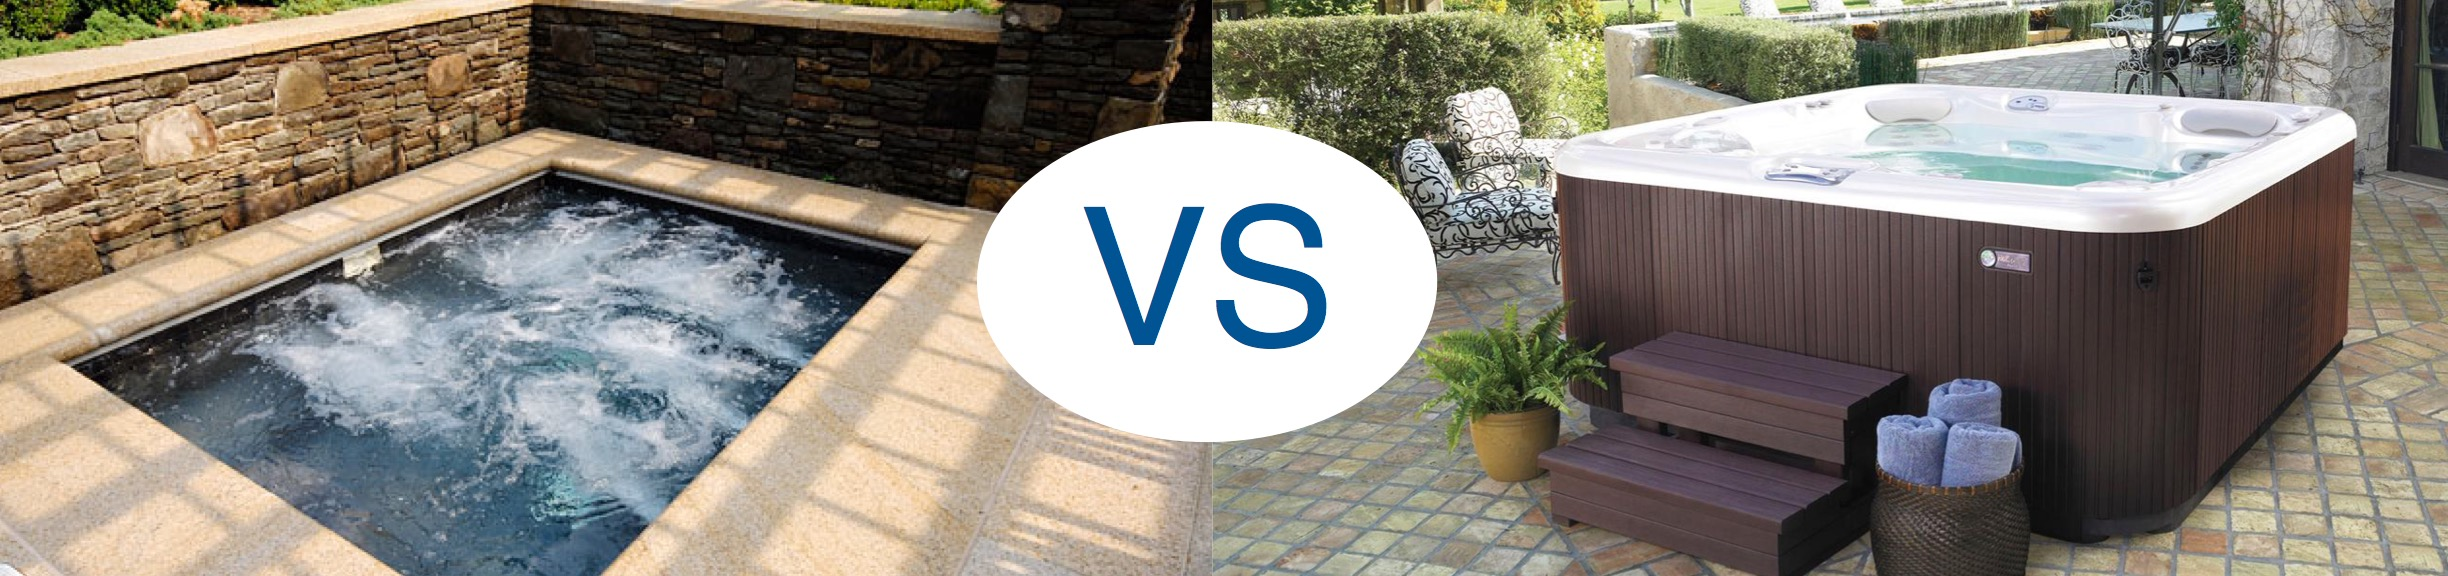 In-Ground Spa vs. Above-Ground Hot Tub